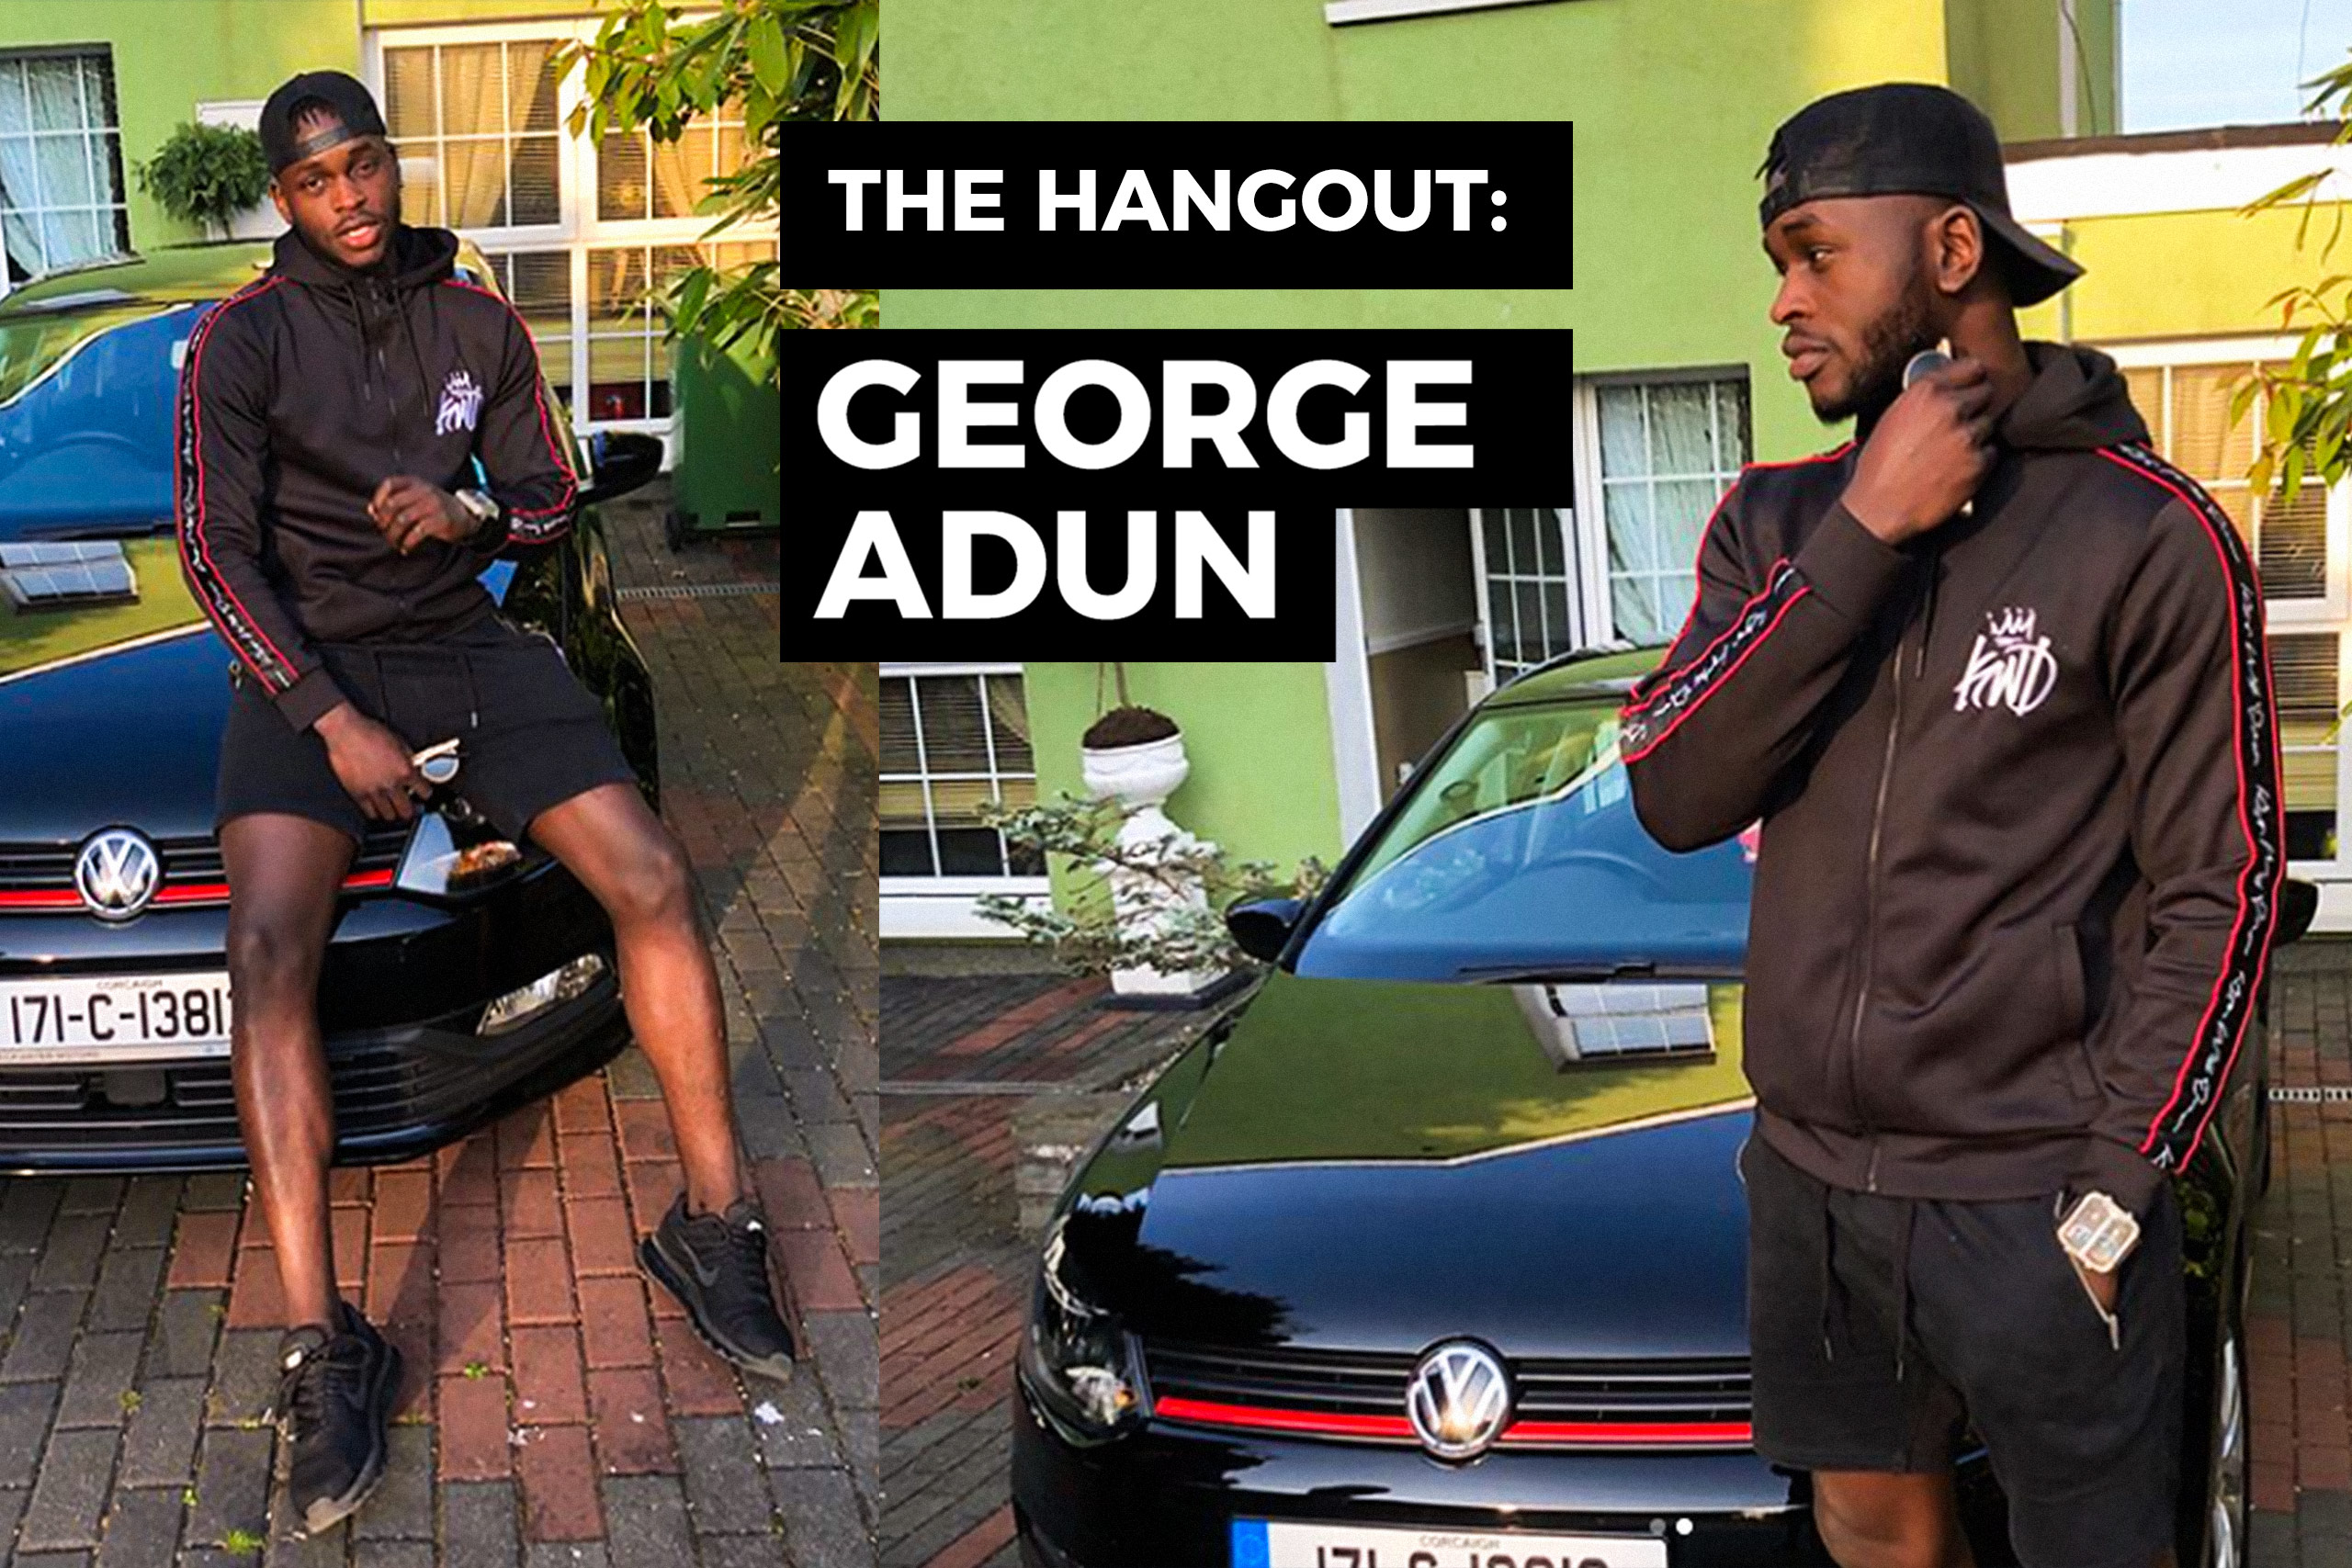 The Hangout: George Adun